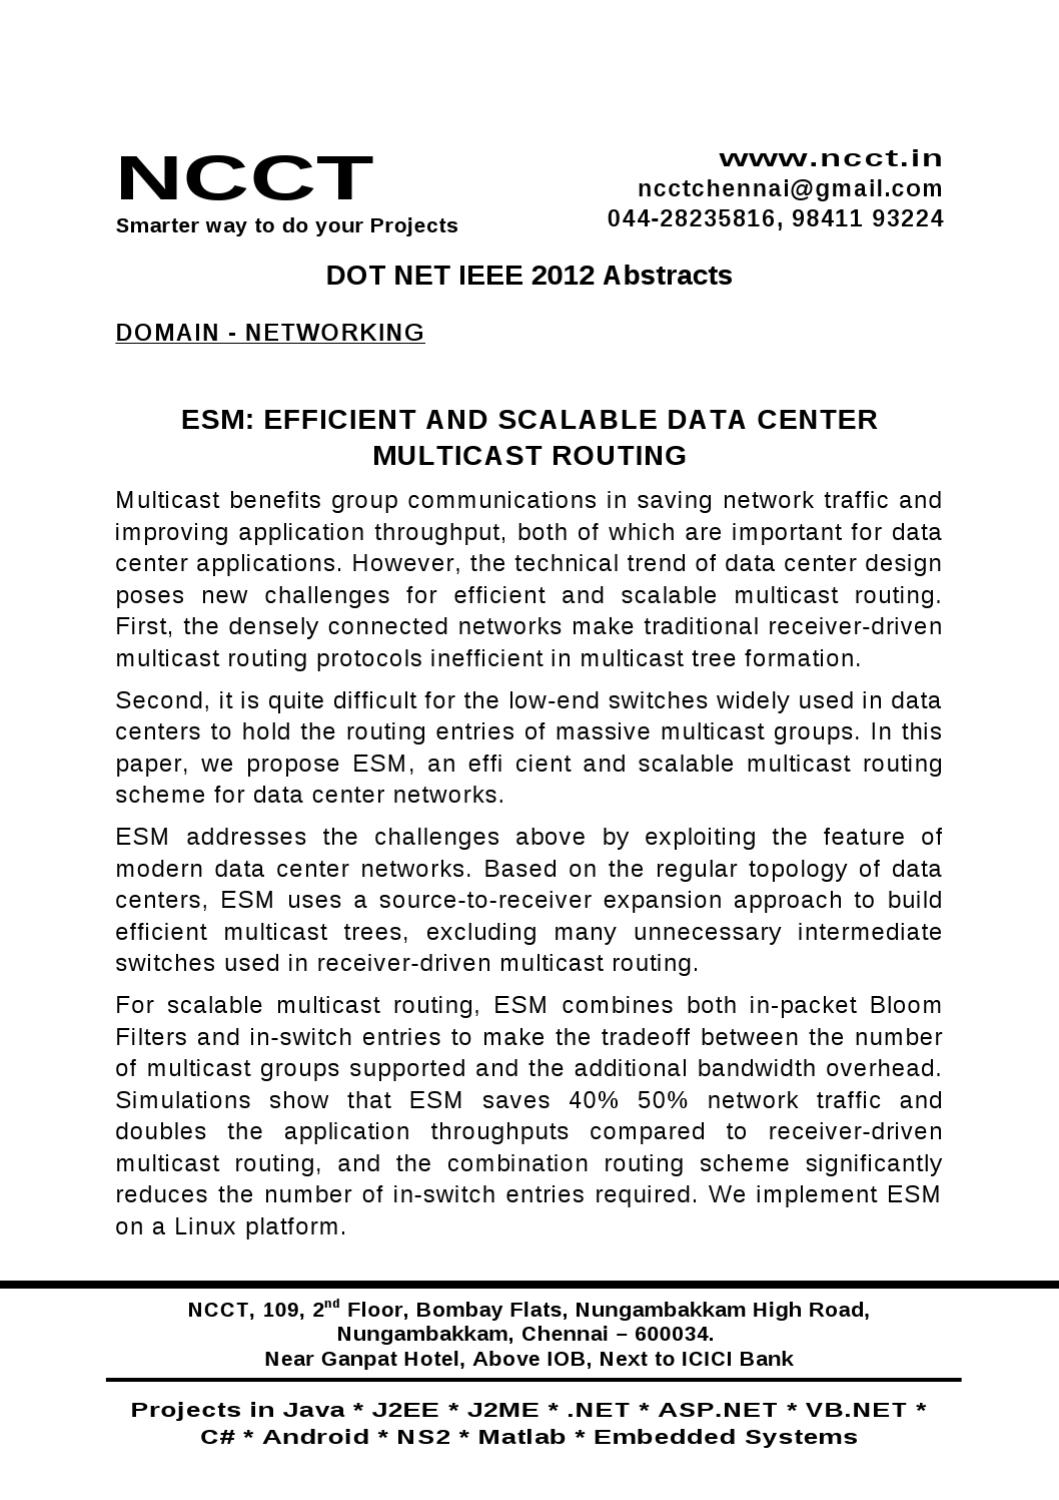 Dot NET-Networking -- ESM EFFICIENT AND SCALABLE DATA CENTER